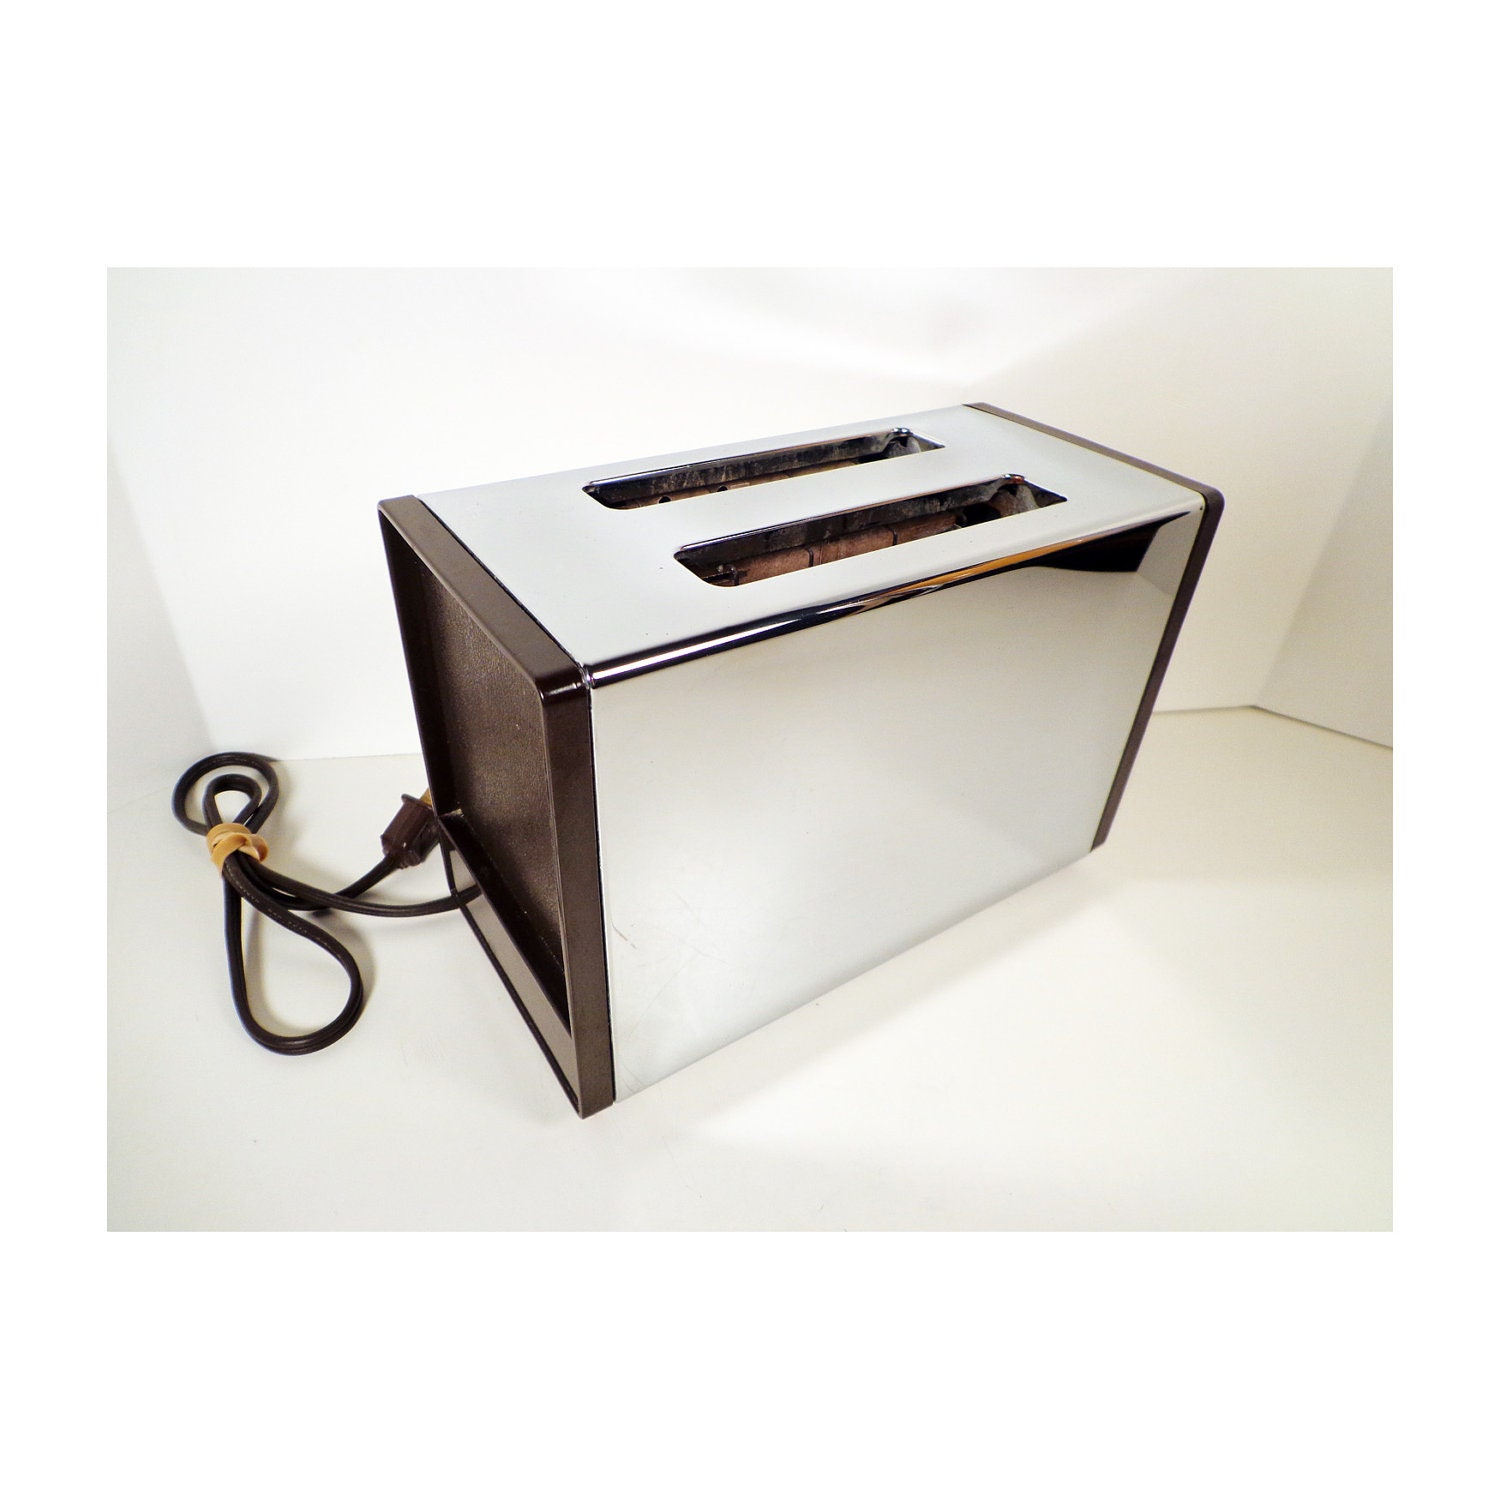 vintage toaster mid century modern general electric model. Black Bedroom Furniture Sets. Home Design Ideas